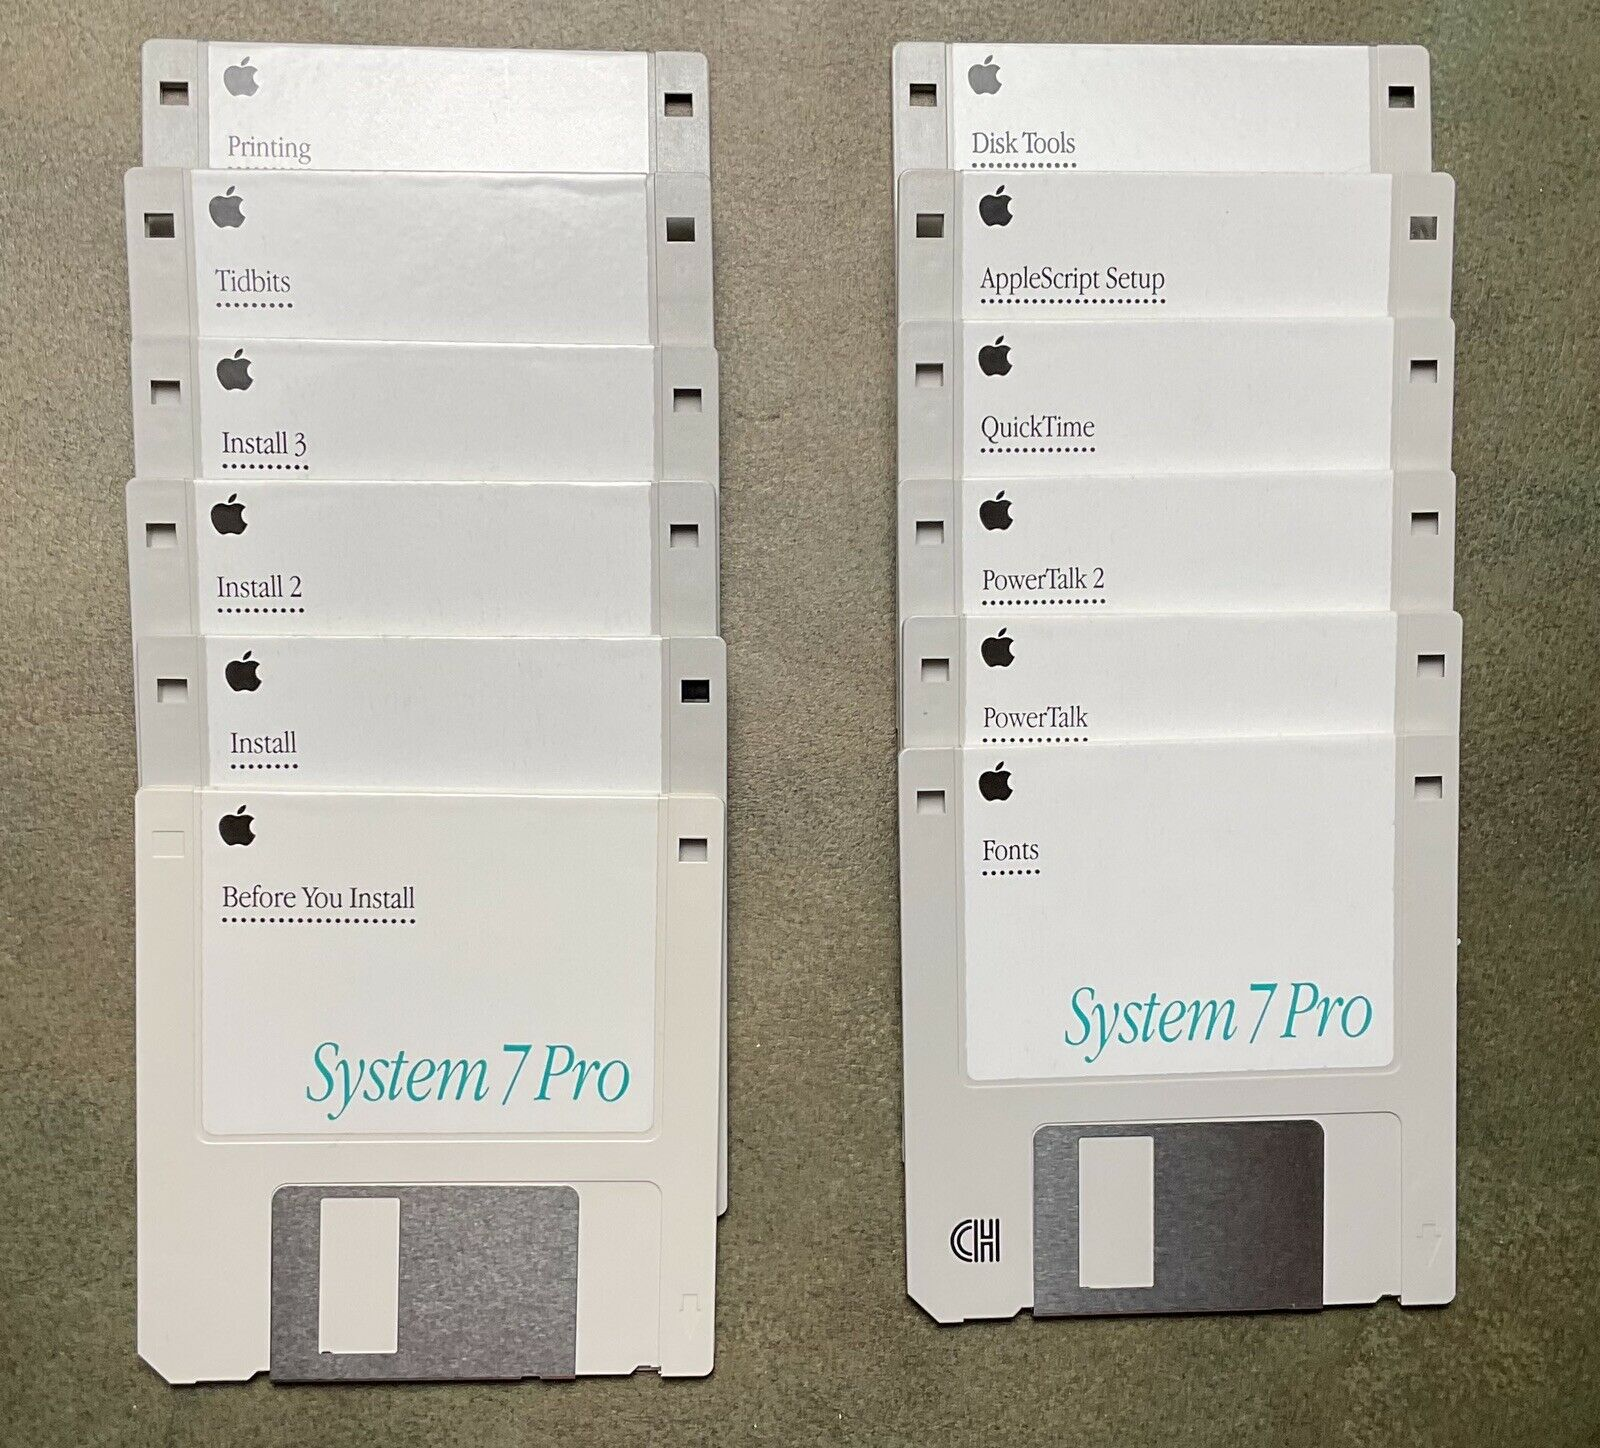 An image of 12 floppy disks comprising the Mac's System 7 operating system